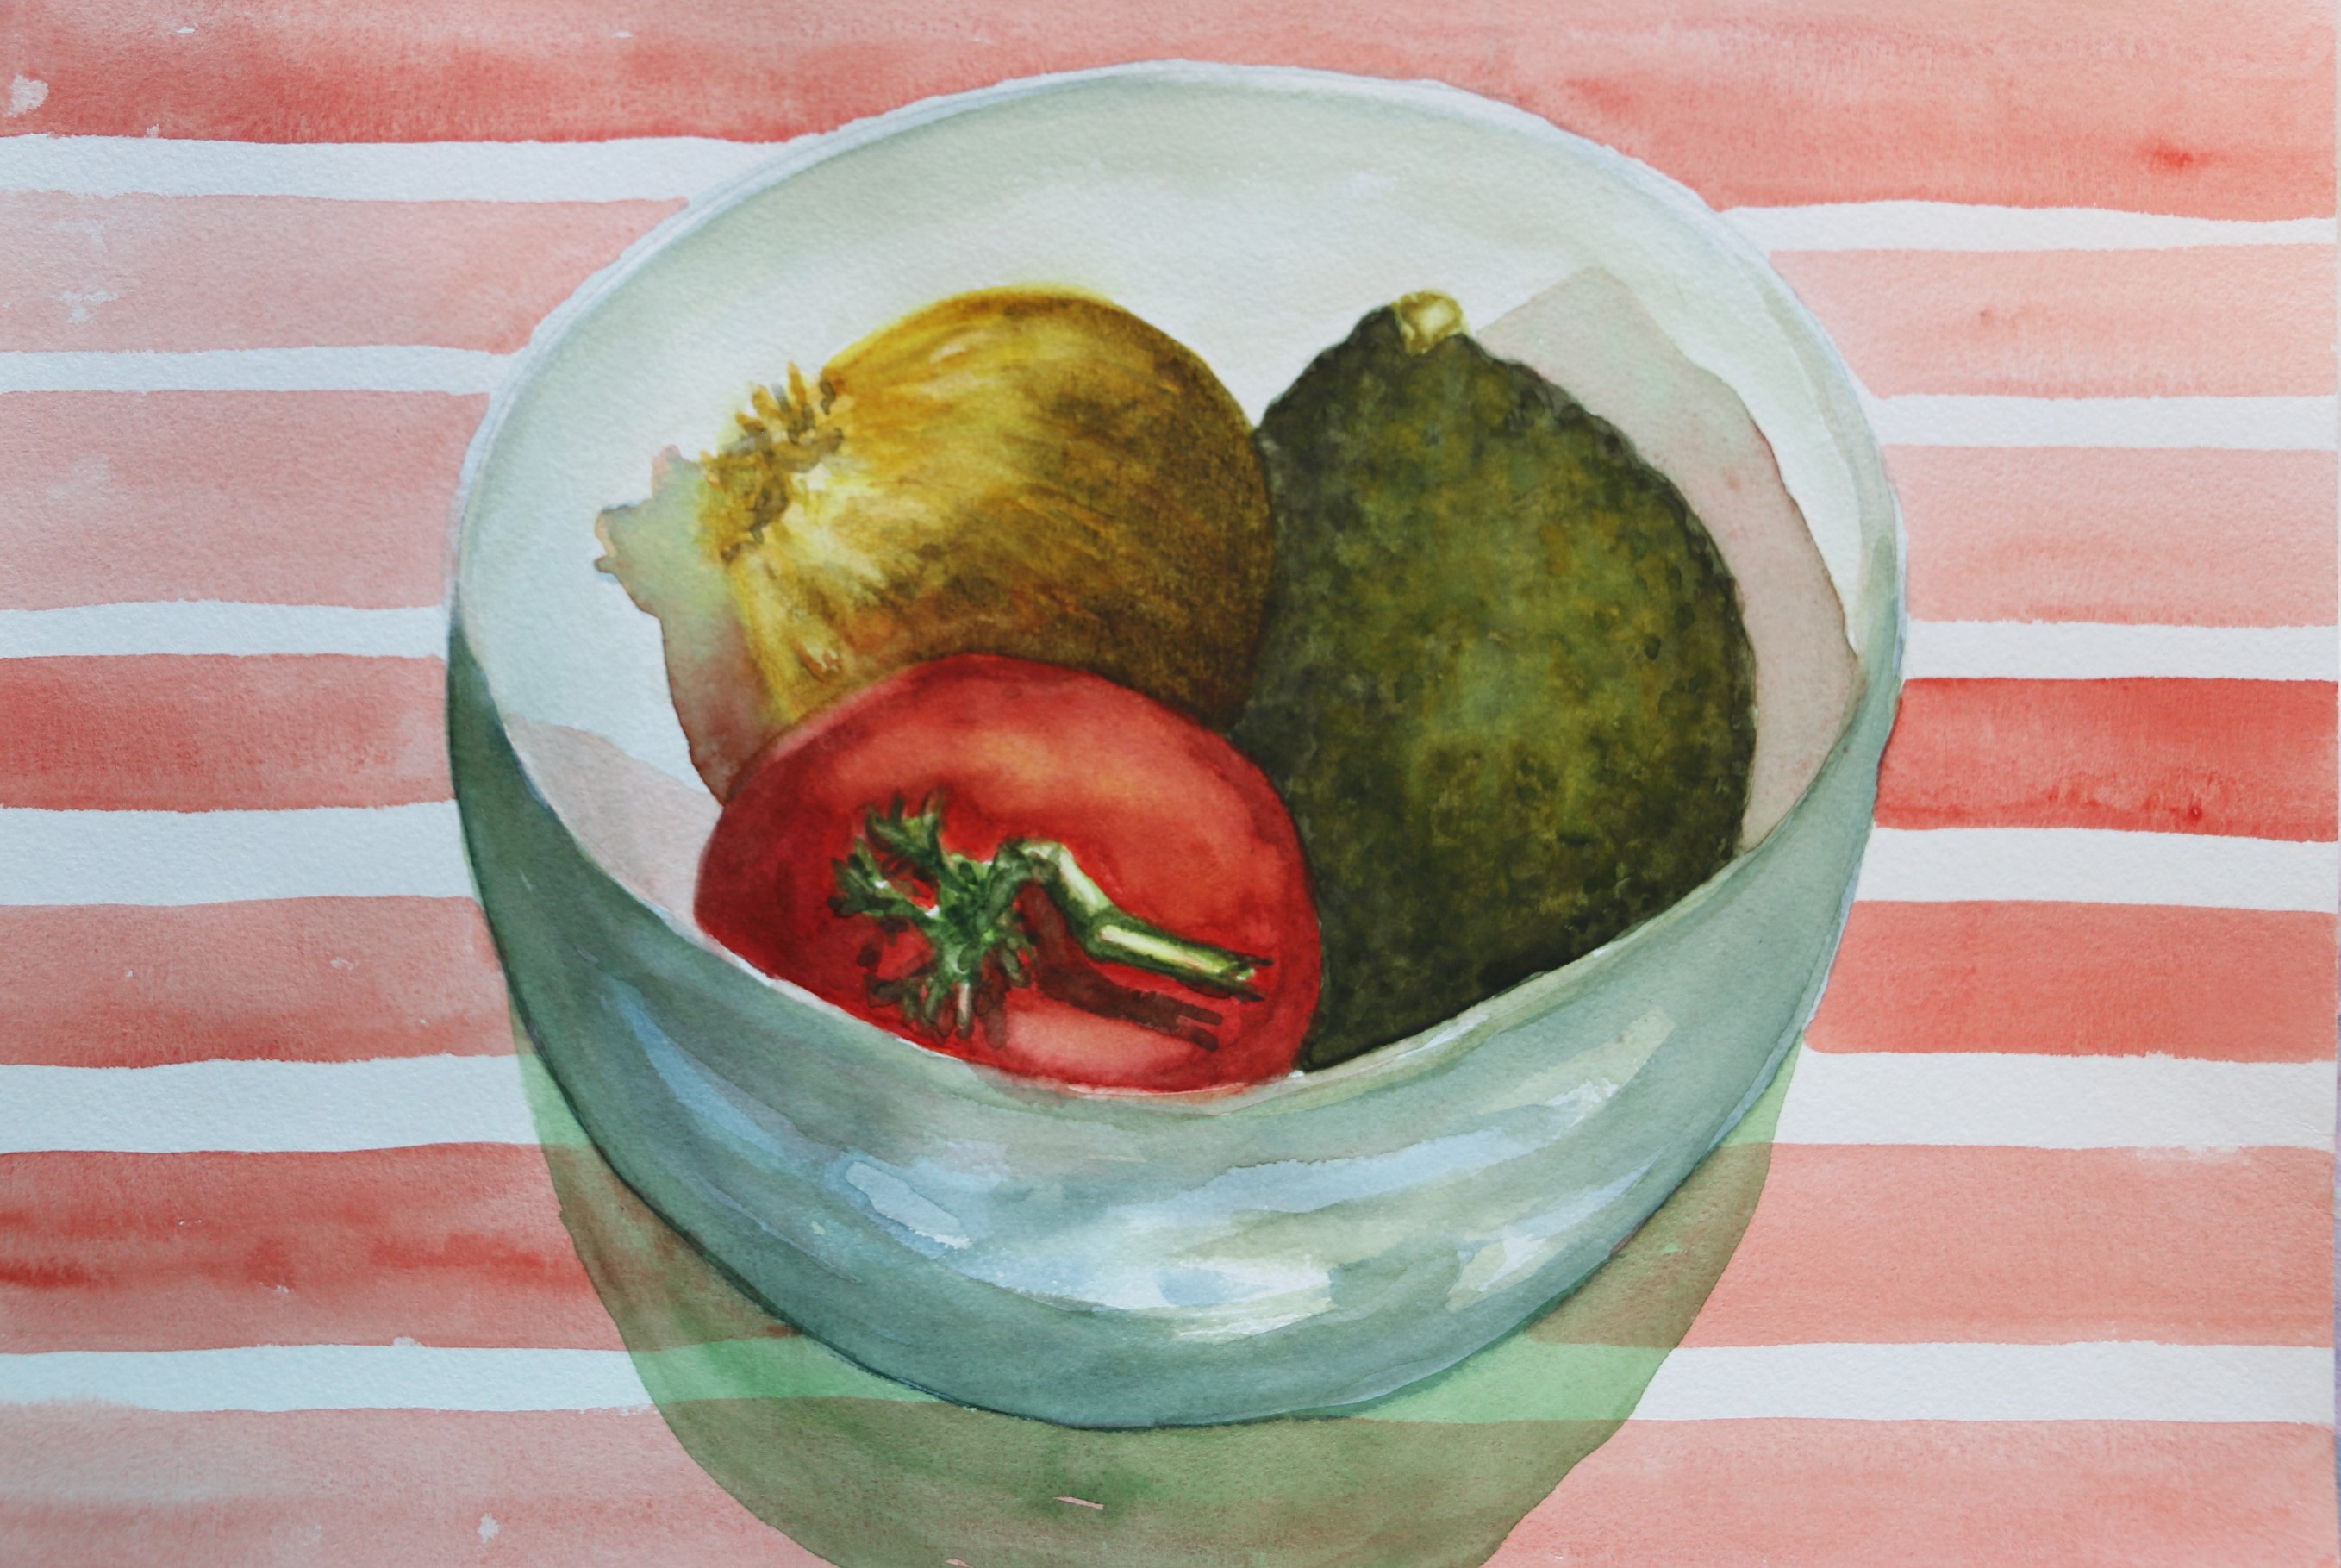 Still Life Bowl with Tomato